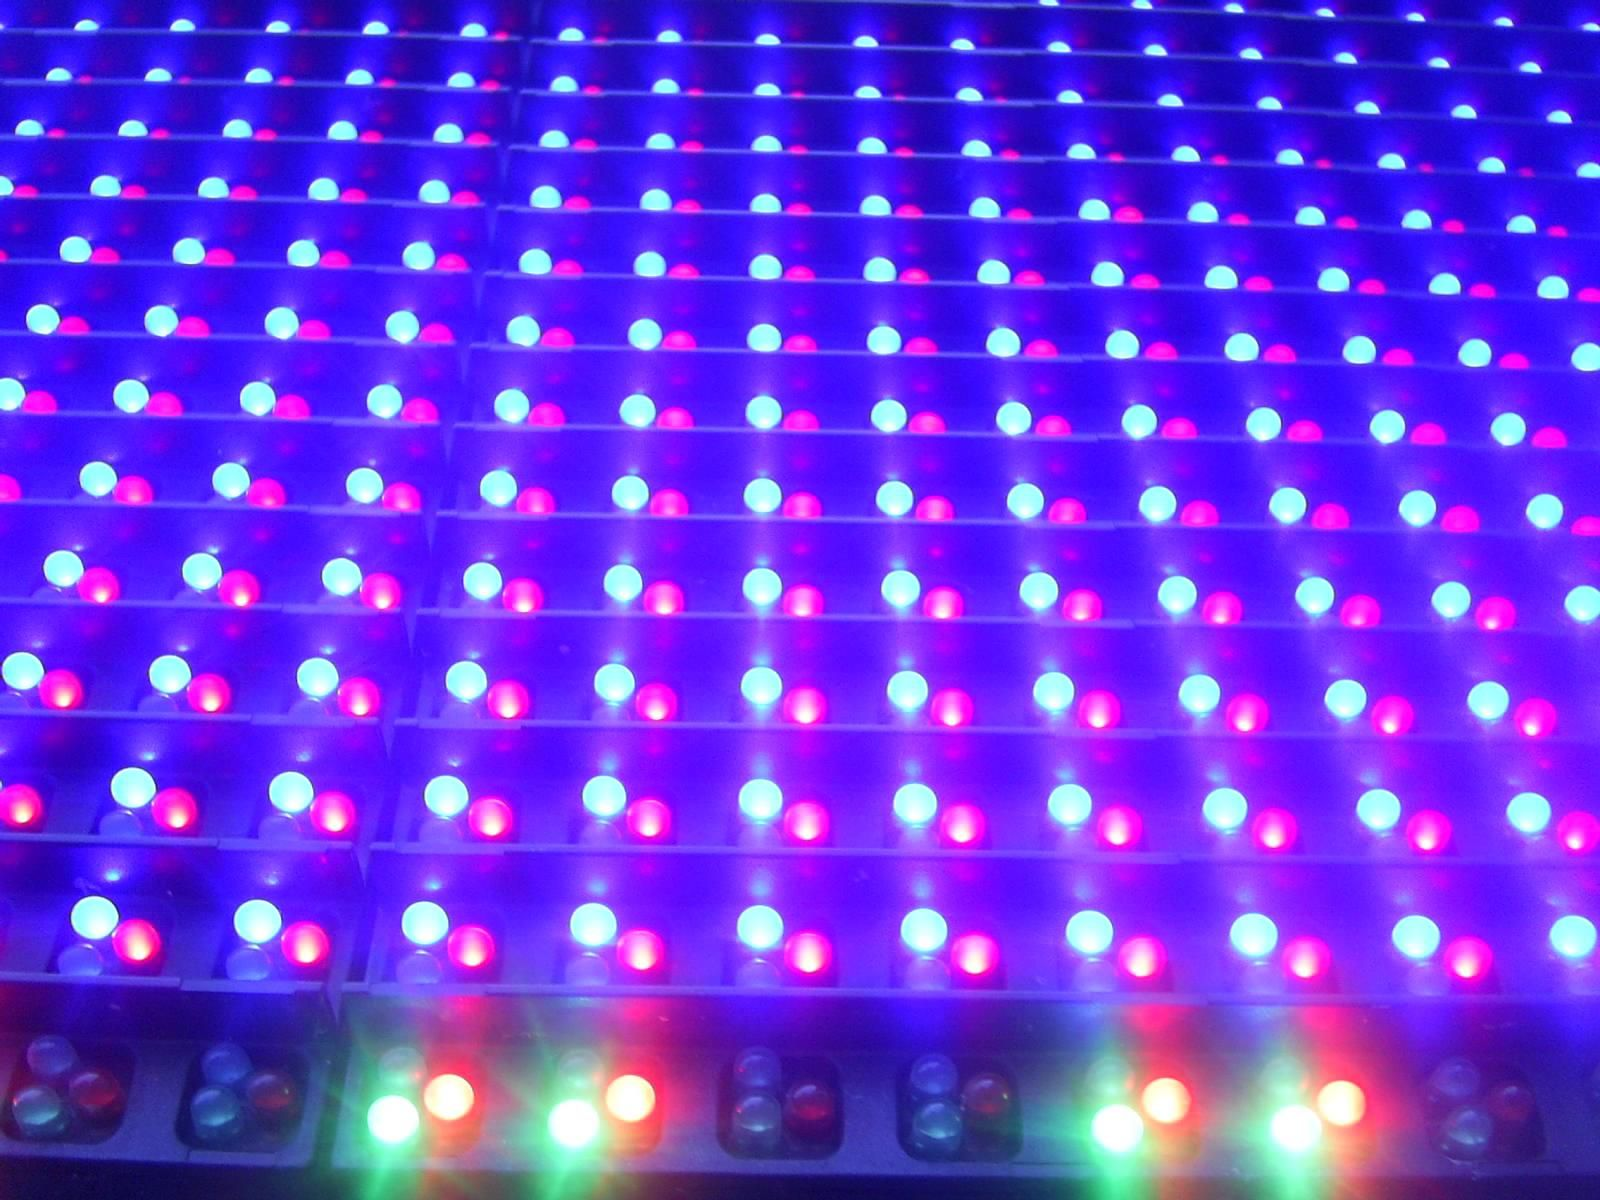 Light Emitting Wallpaper Filecloseup Of Some Light Emitting Diodes On A Signjpg